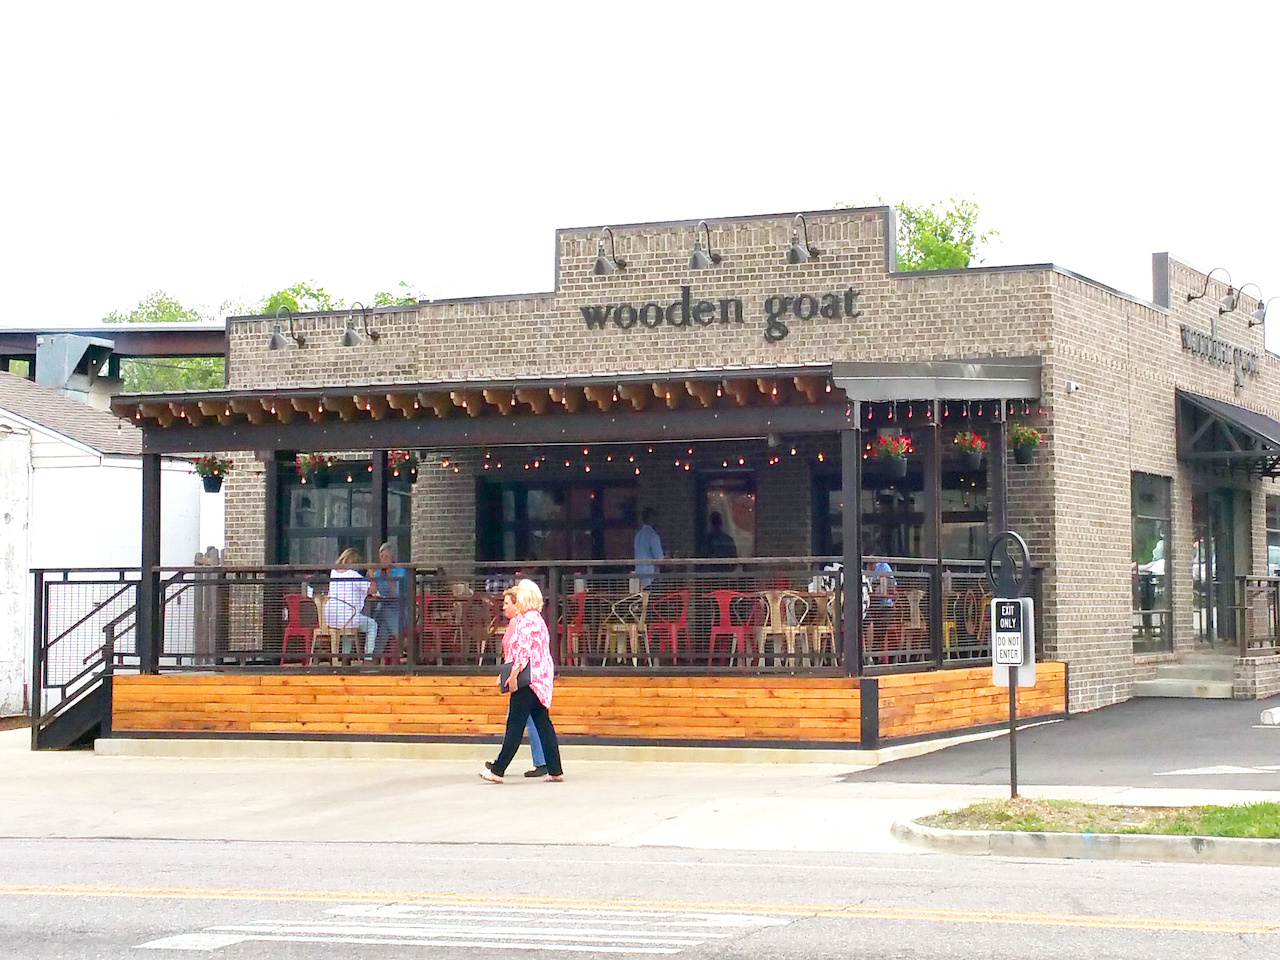 In the heart of Avondale, wooden goat has terrific parking as well as a large covered patio dining area.